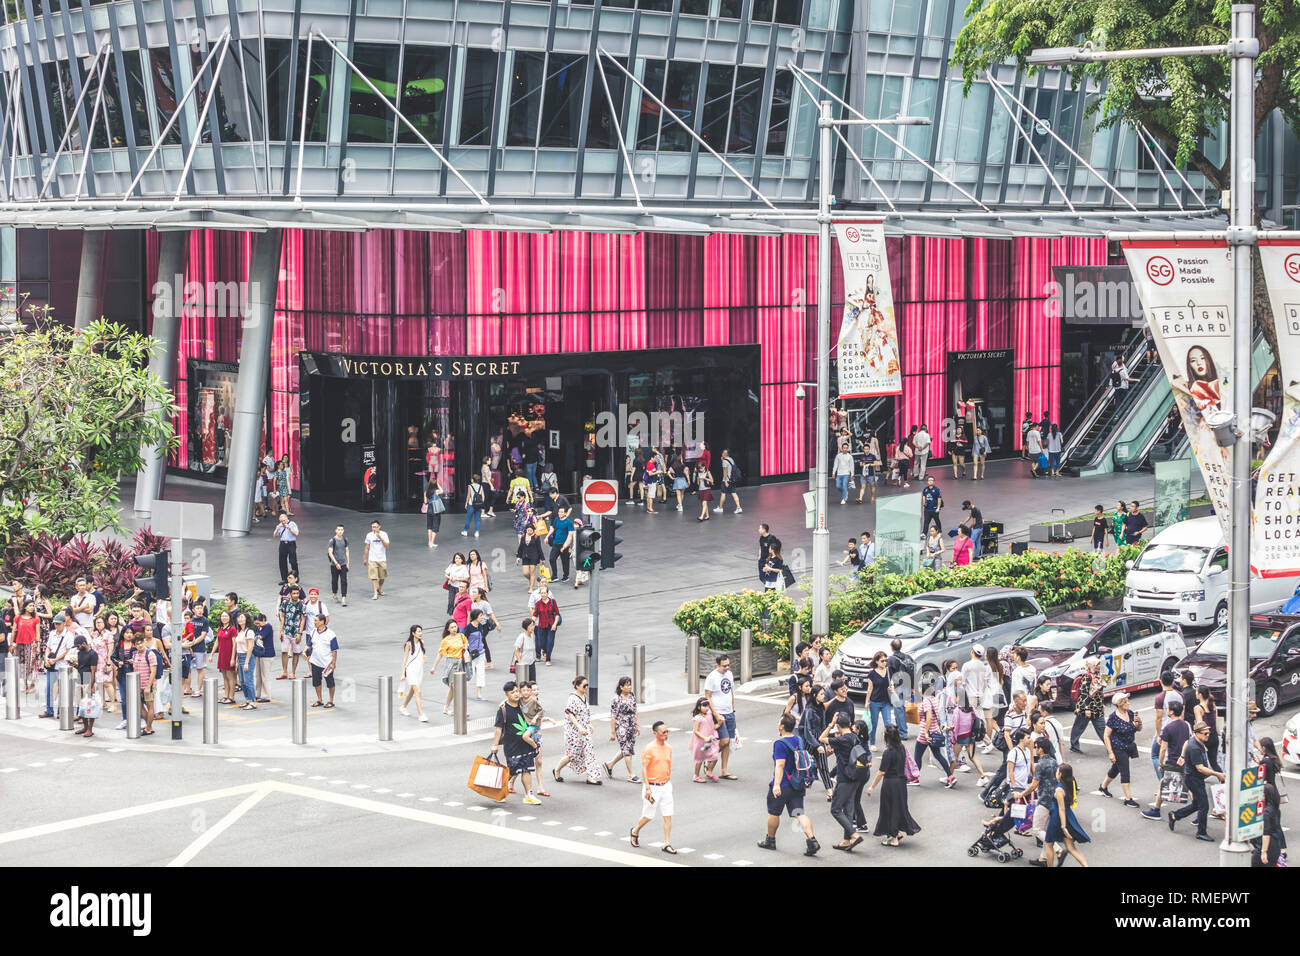 Singapore / Singapore - February 10 2019: Pedestrian traffic scramble road crossing at Orchard Road Somerset junction featuring Victoria Secret store - Stock Image